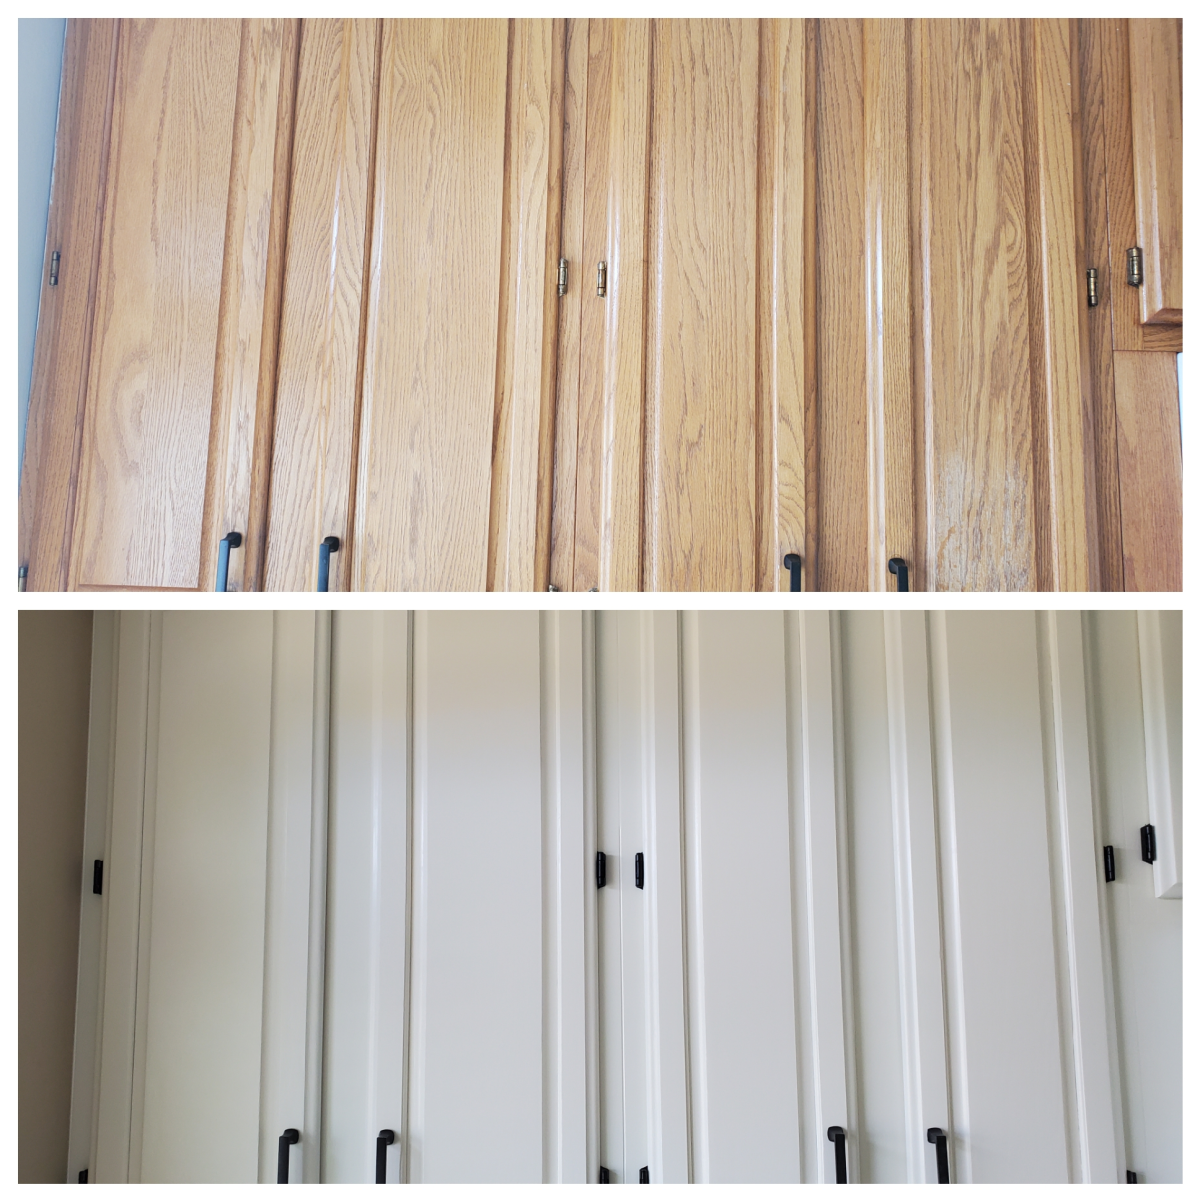 Oak cabinets I filled with drywall mud and spray painted.